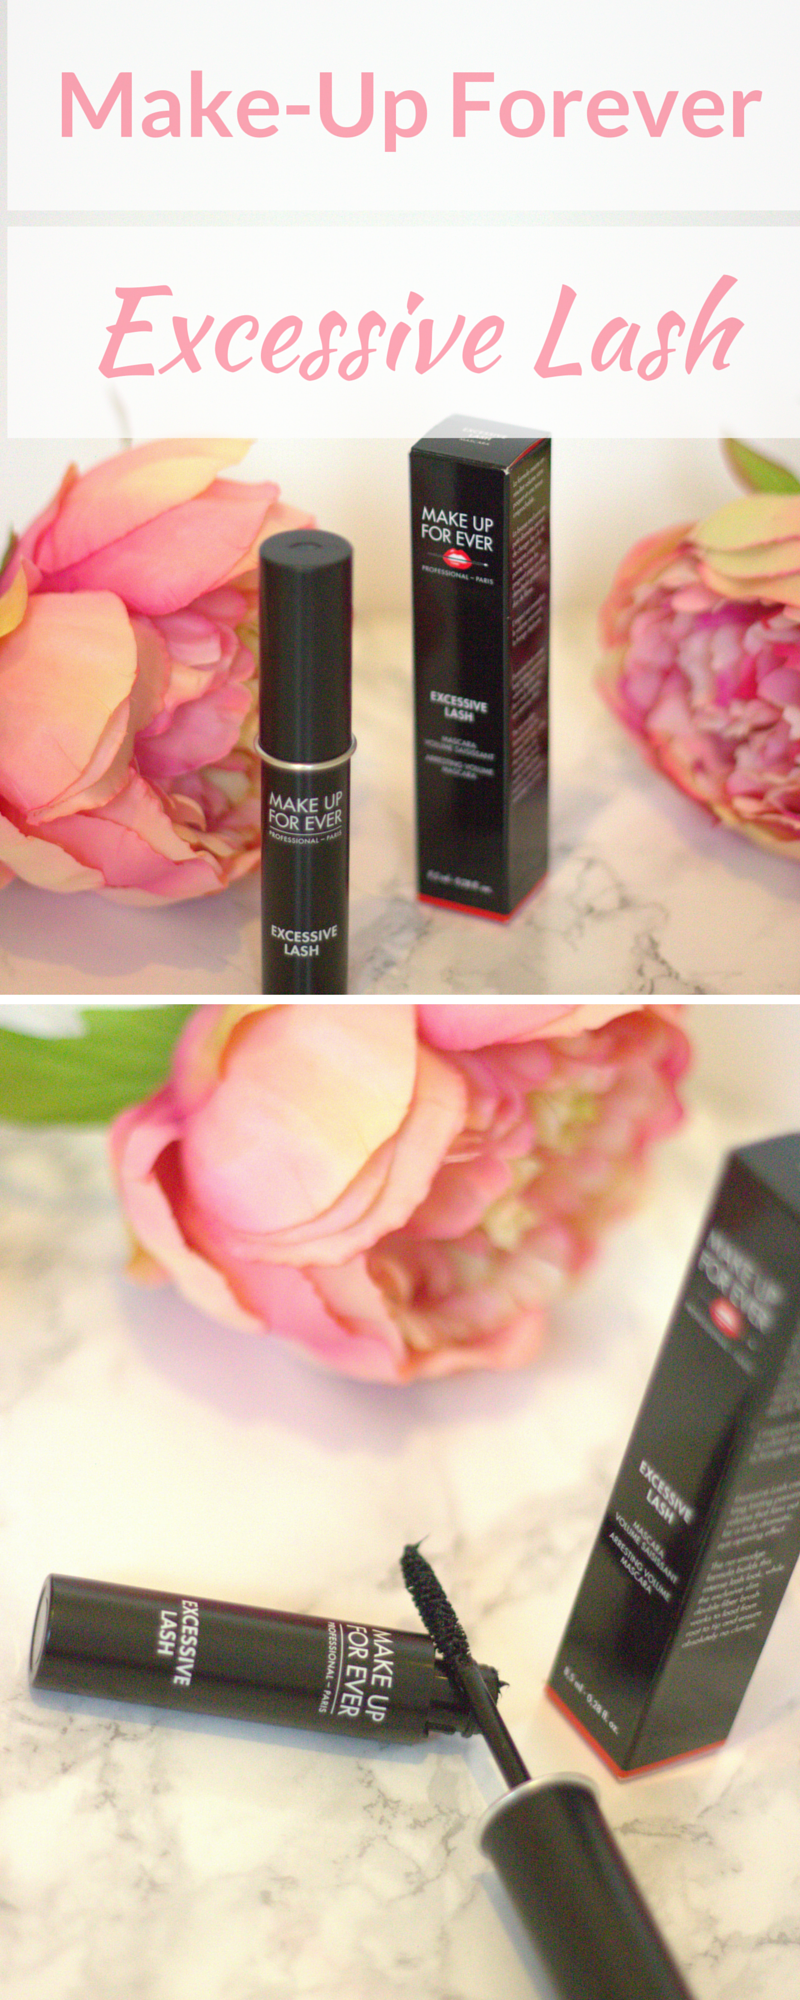 Make Up For Ever Excessive Lash Mascara Review (With